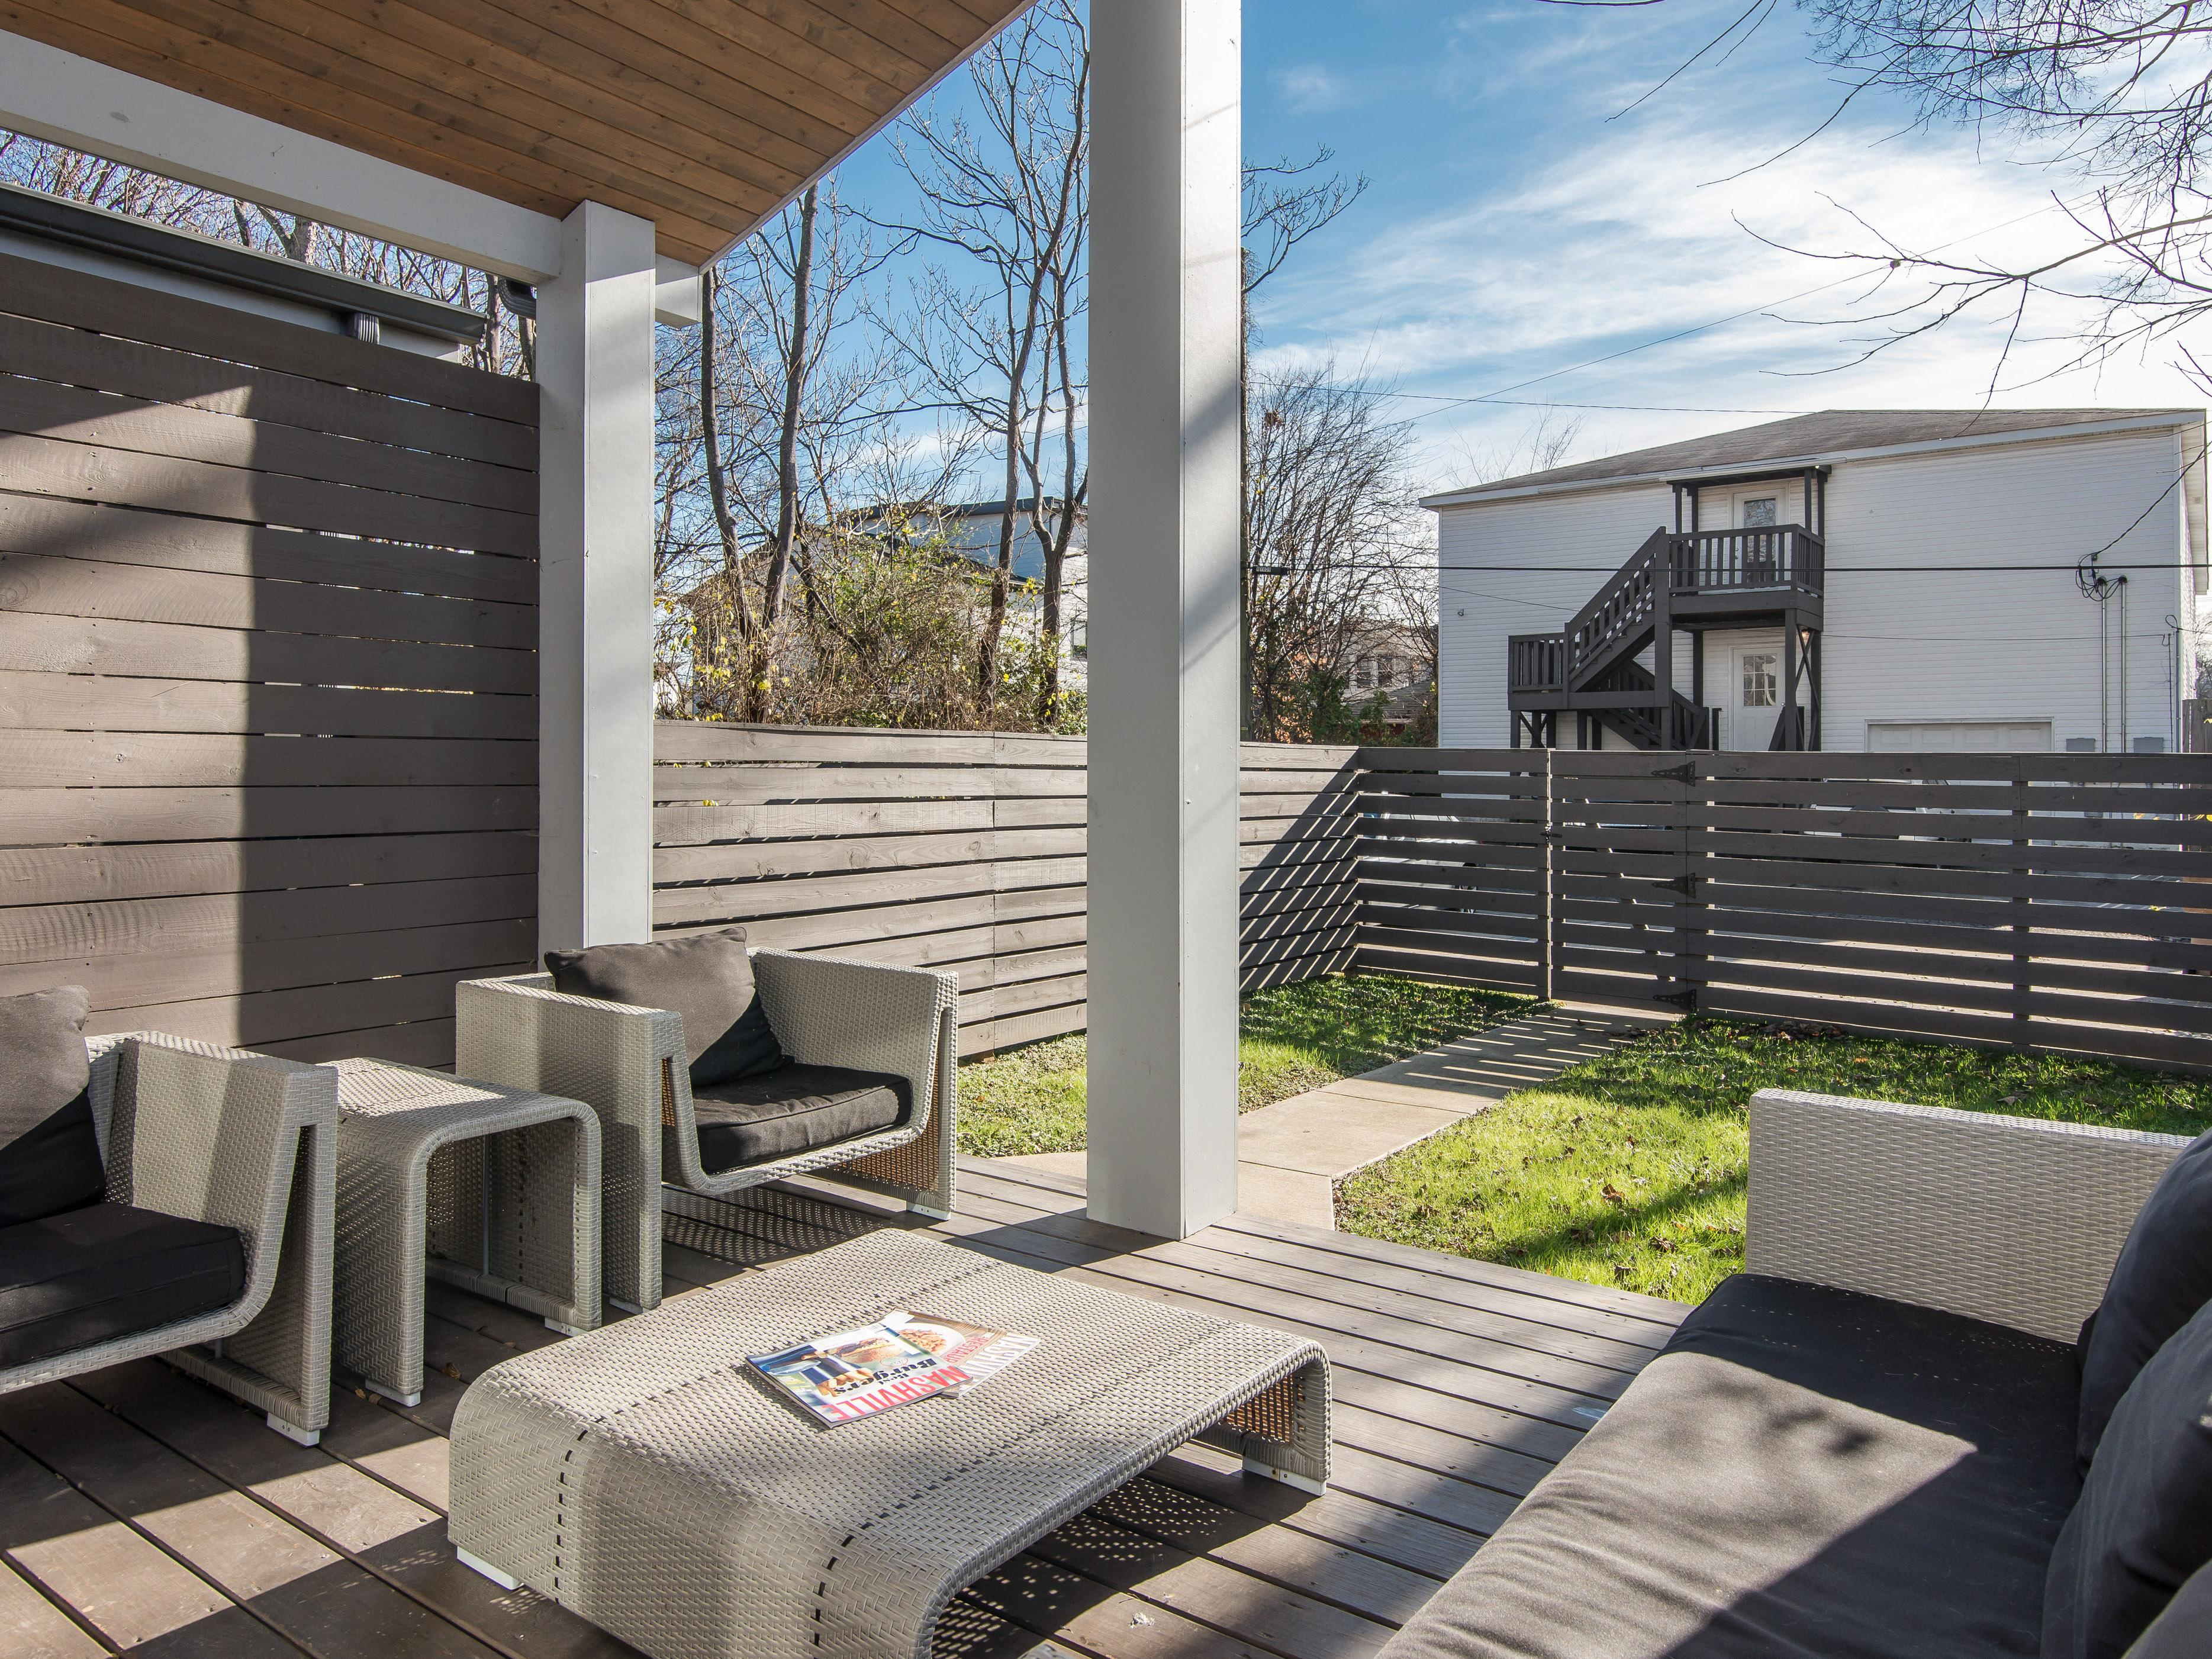 The back deck lounge makes entertaining outdoors a breeze.